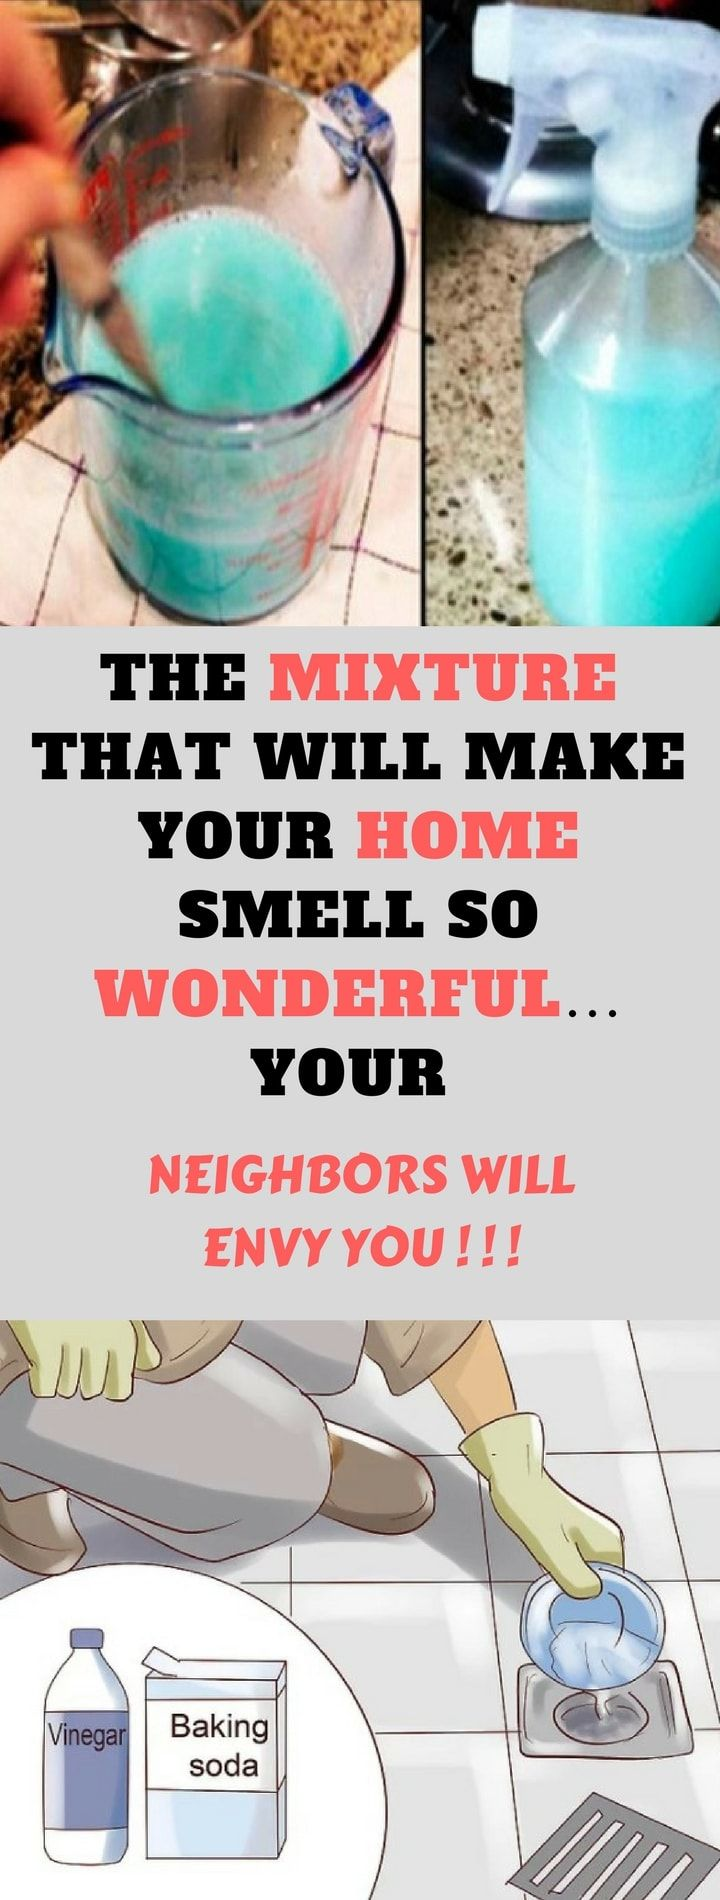 MIXTURE THAT WILL MAKE YOUR HOME SMELL SO WONDERFUL